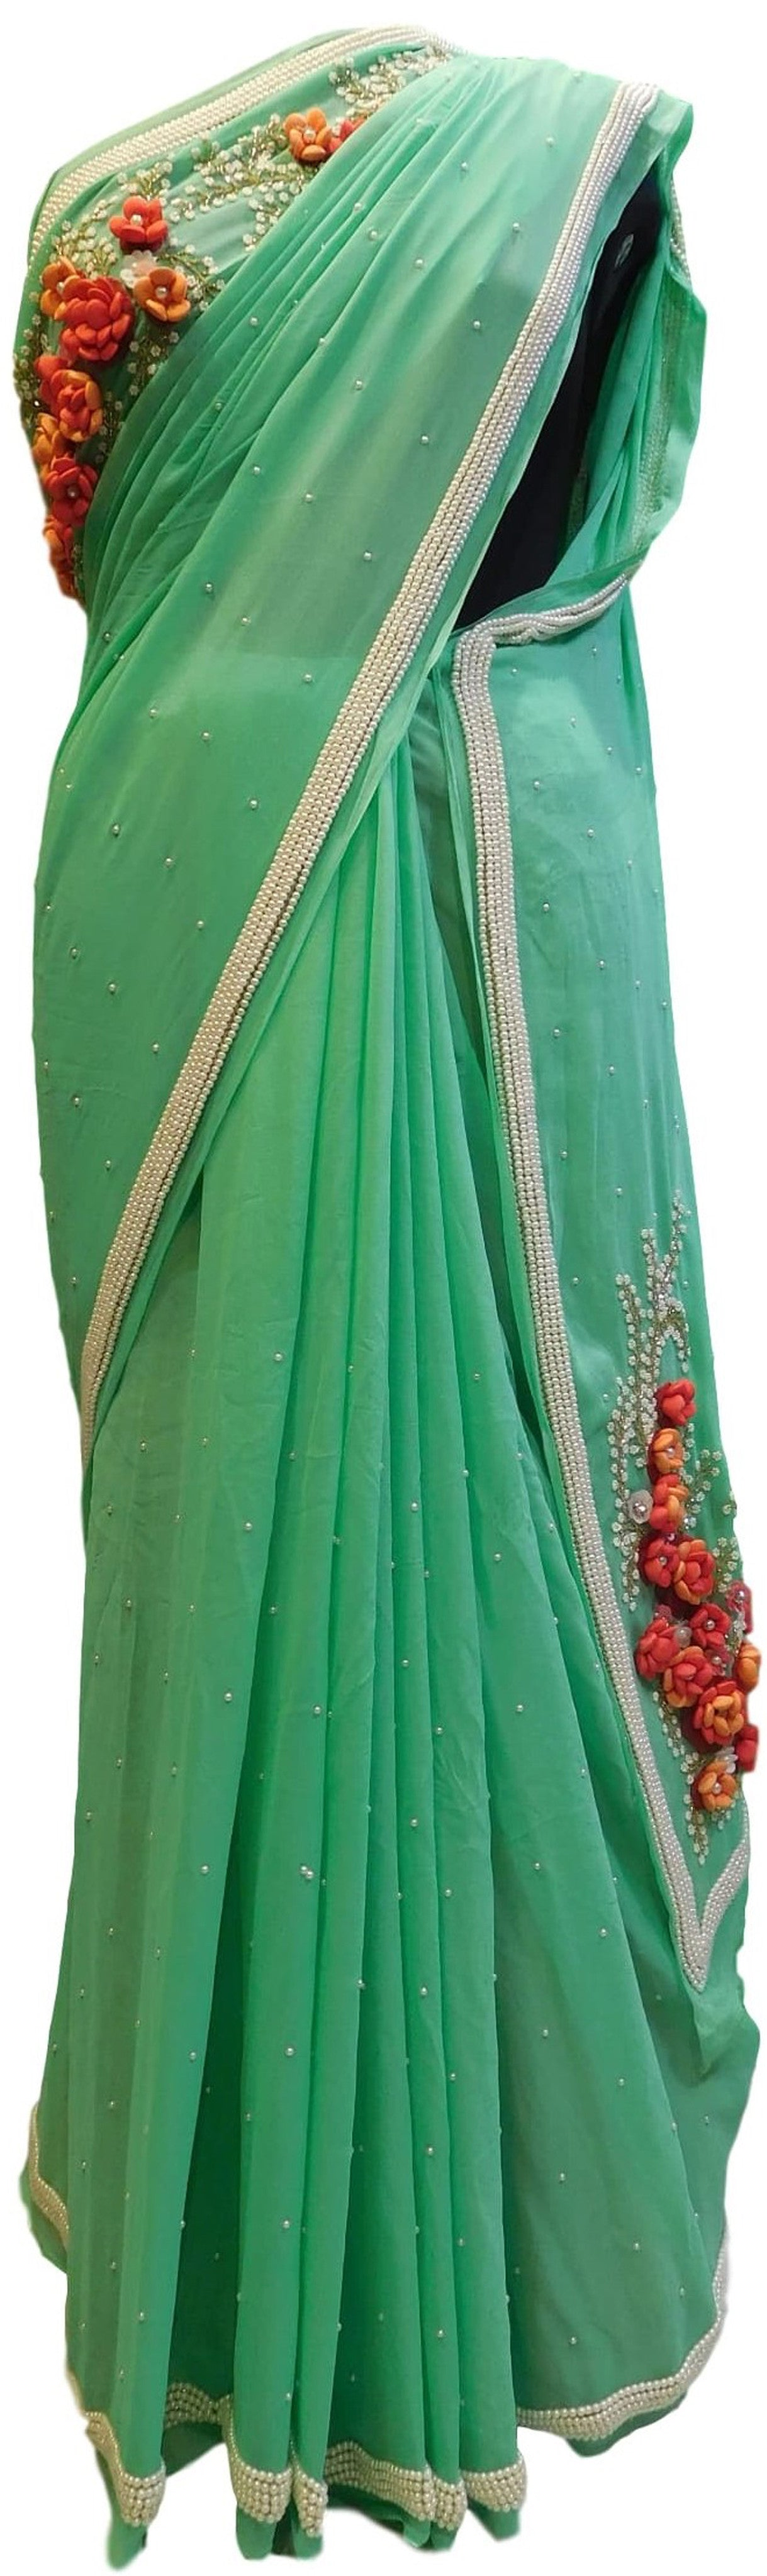 Green Designer Bridal Georgette Sari Hand Embroidery Work Saree